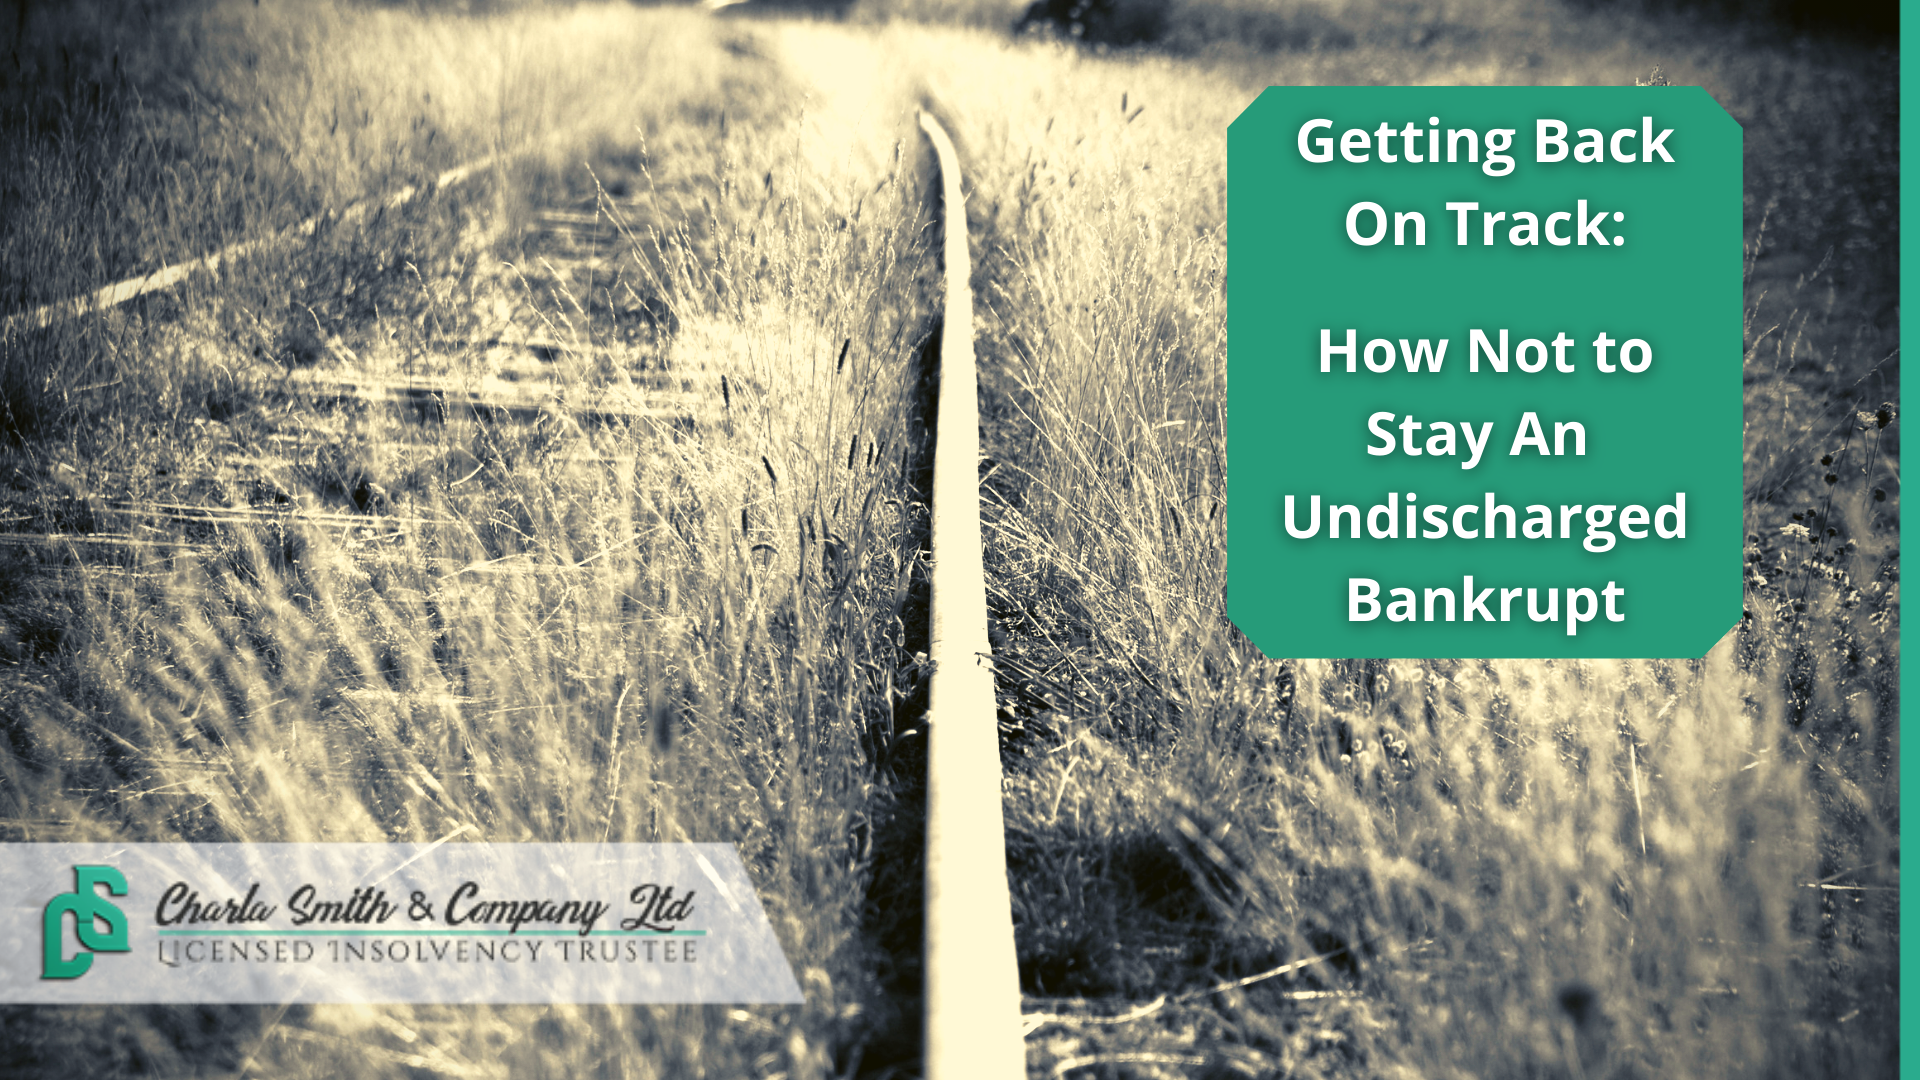 Getting Back On Track: How Not To Stay An Undischarged Bankrupt